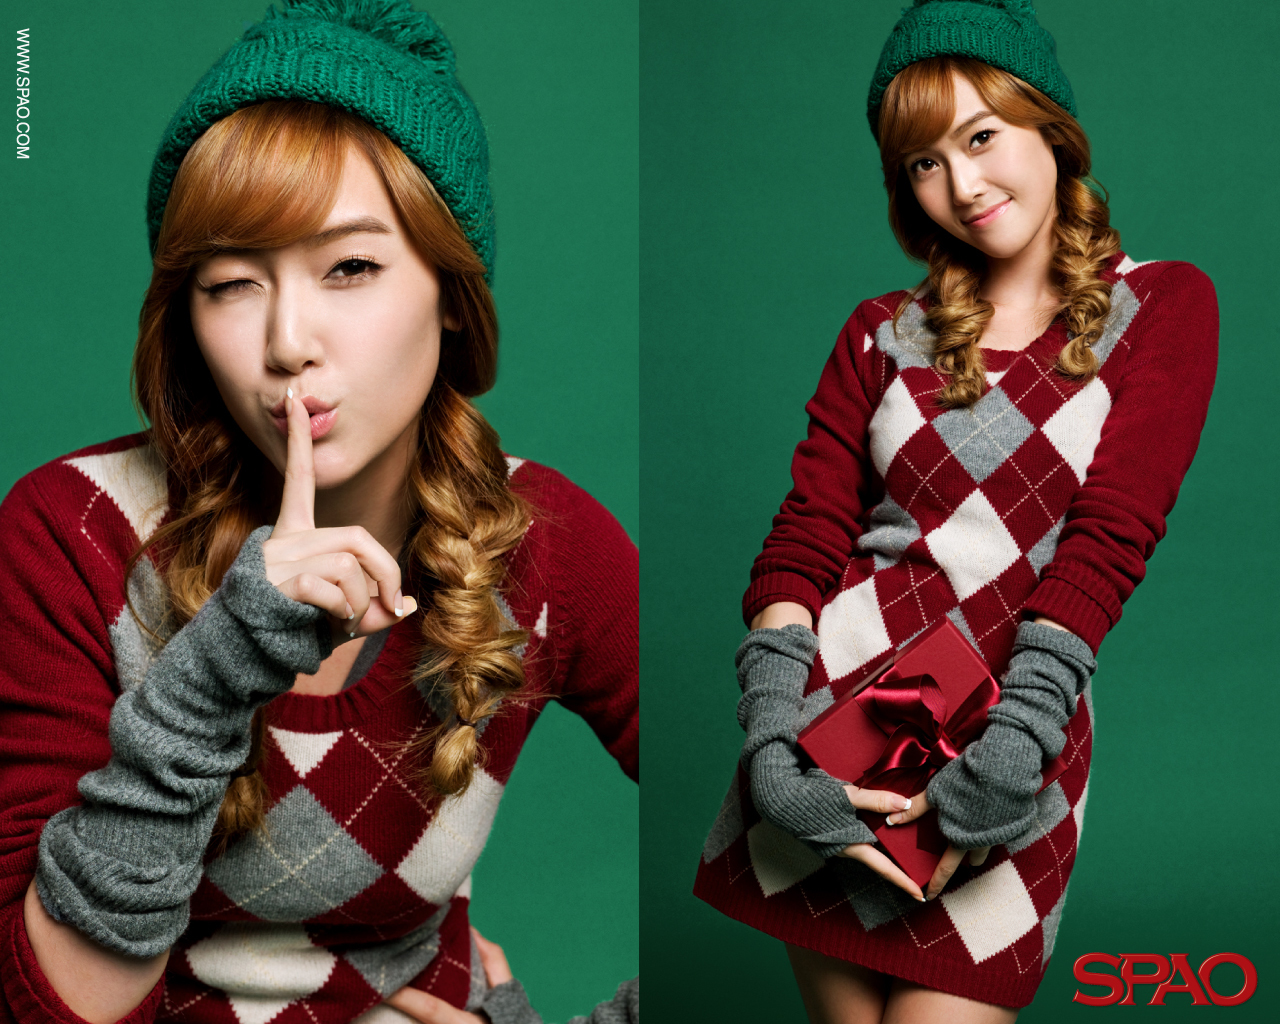 snsd Celebrity Jessica Jung HD Wallpaper